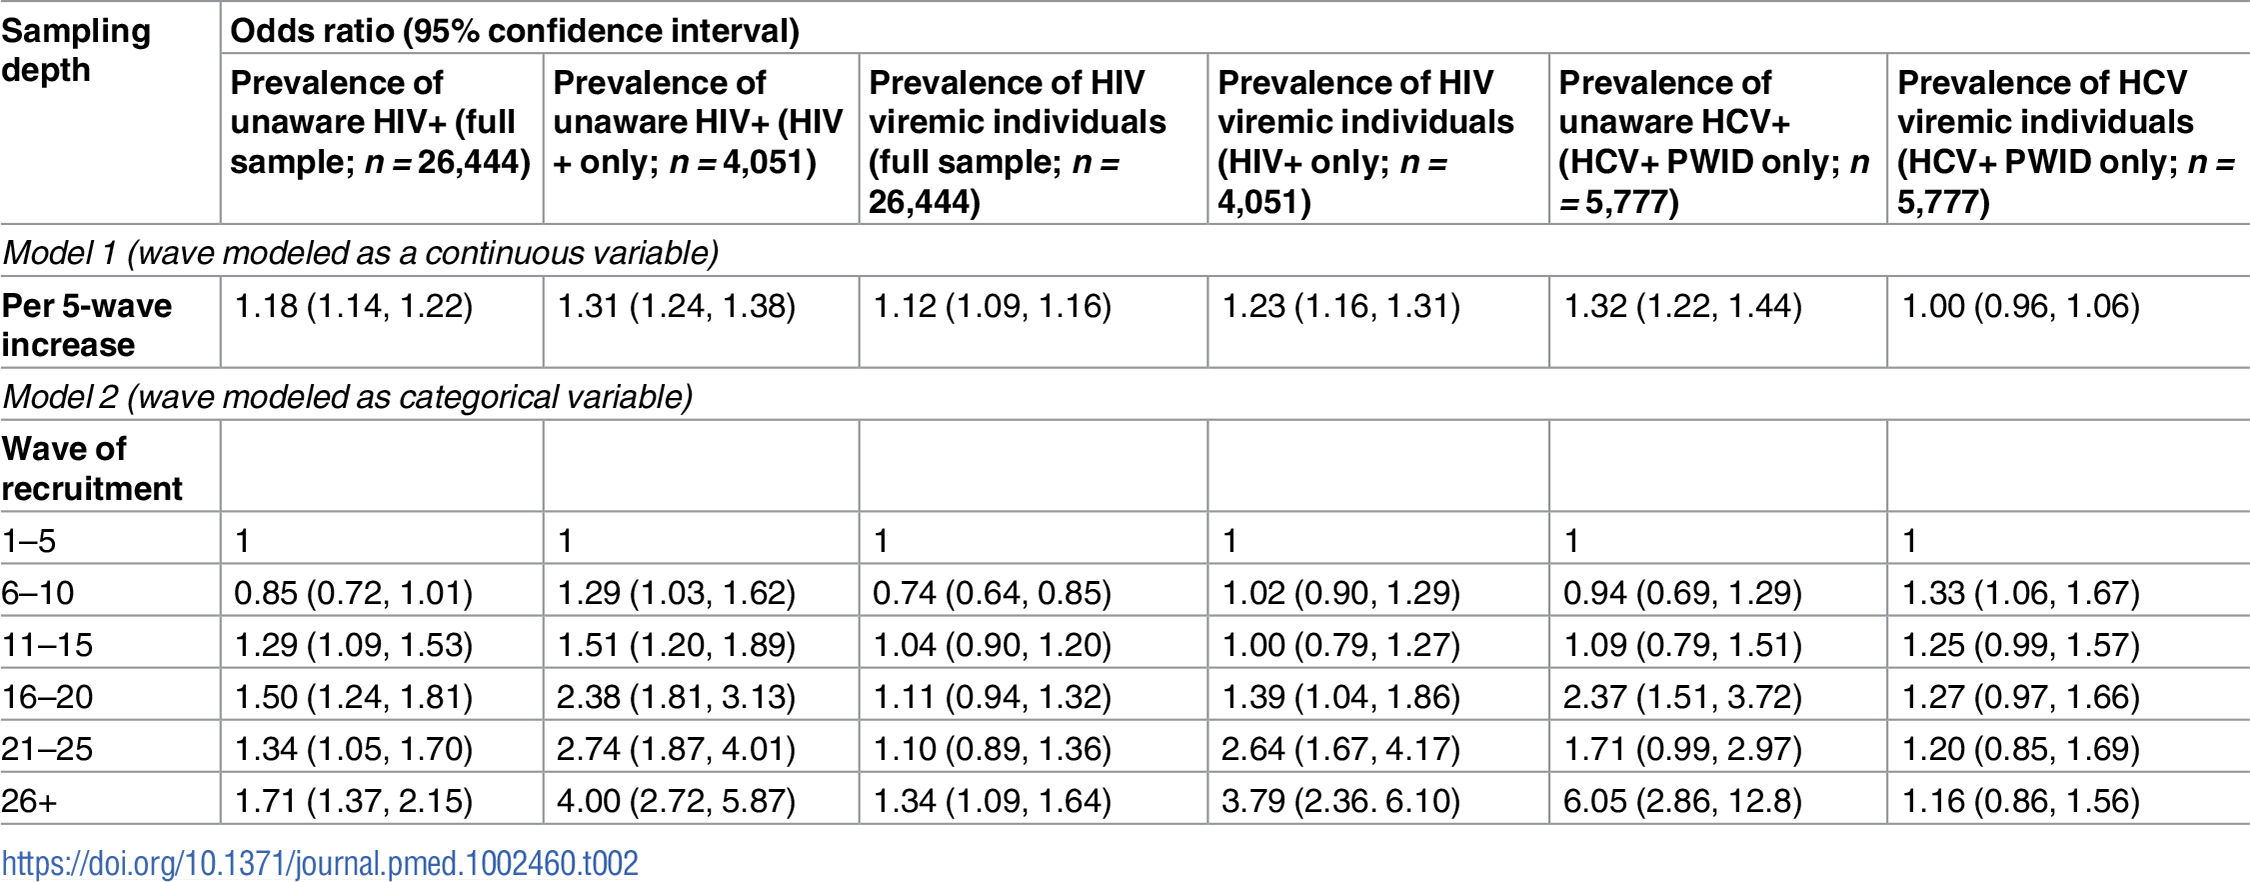 Association of respondent-driven sampling depth and prevalence of unaware and viremic persons.